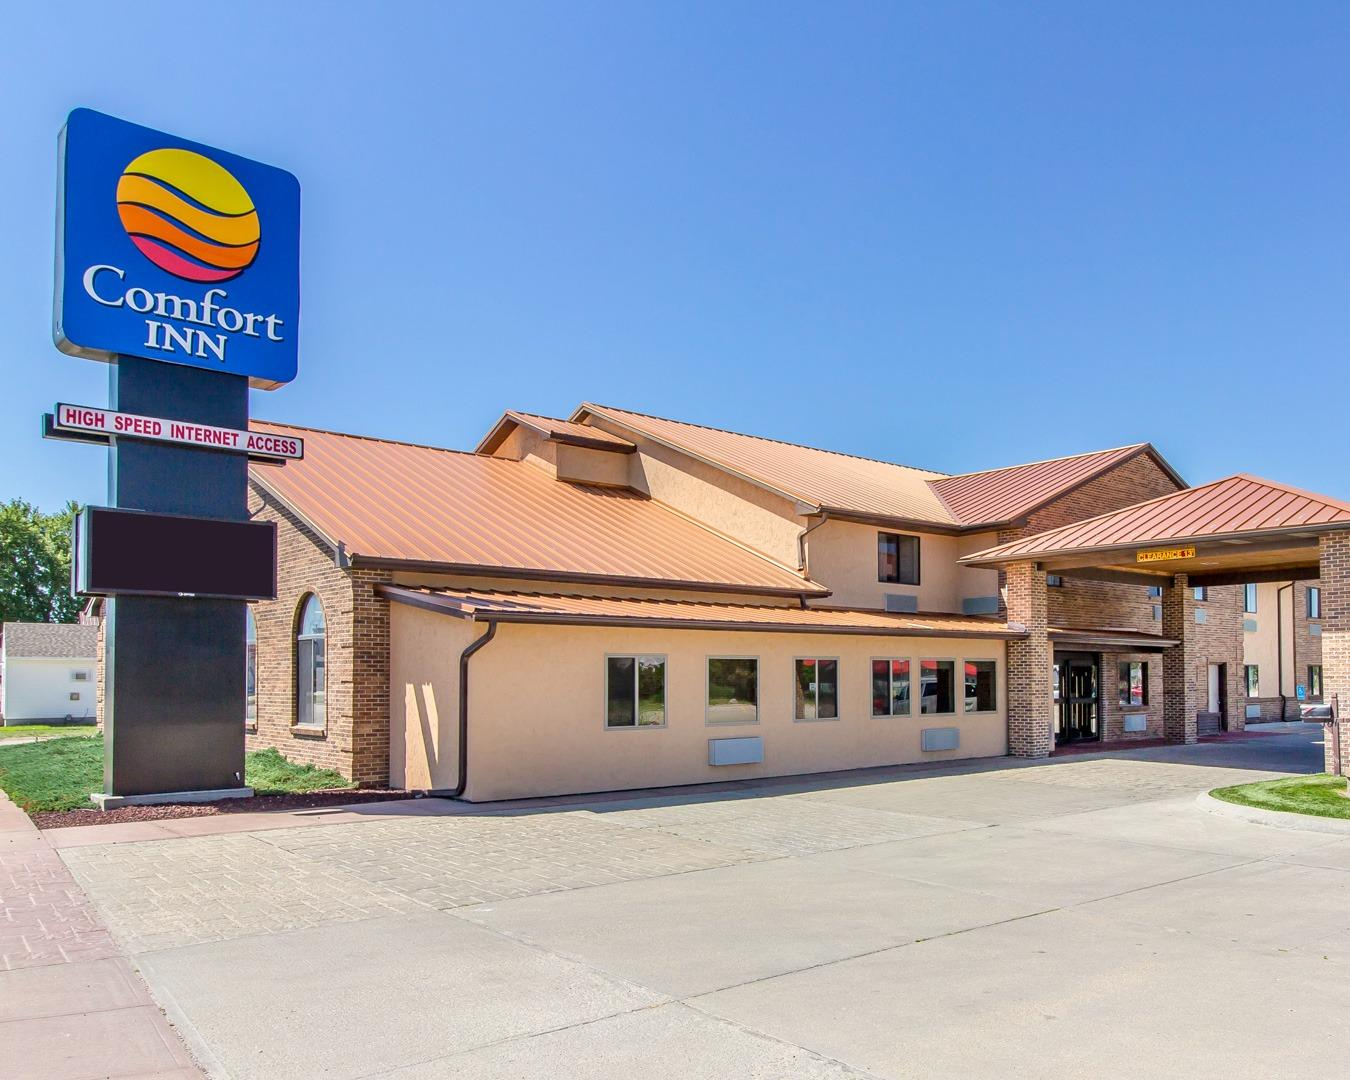 Comfort Inn Coupons Valentine NE Near Me 8coupons